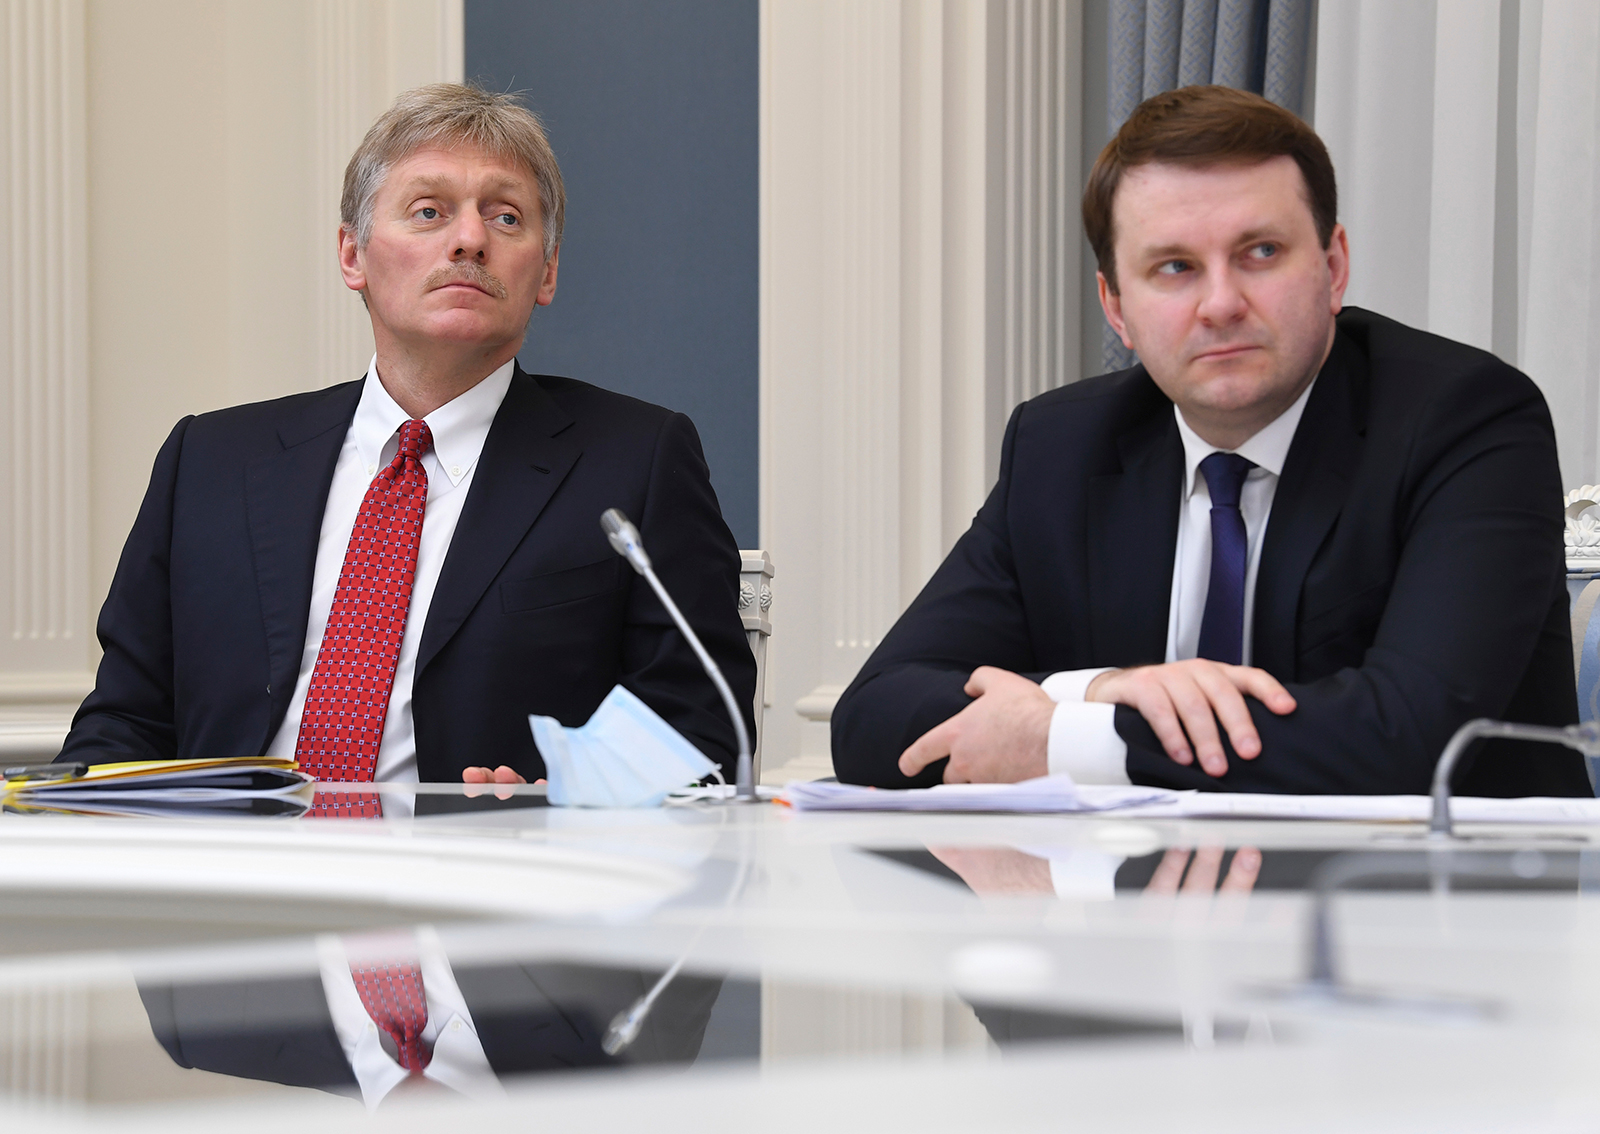 Kremlin spokesman Dmitry Peskov, left, and Russian Presidential Aide Maxim Oreshkin attend a meeting with President Vladimir Putin on economic issues via teleconference call in Moscow, on Tuesday, April 14.